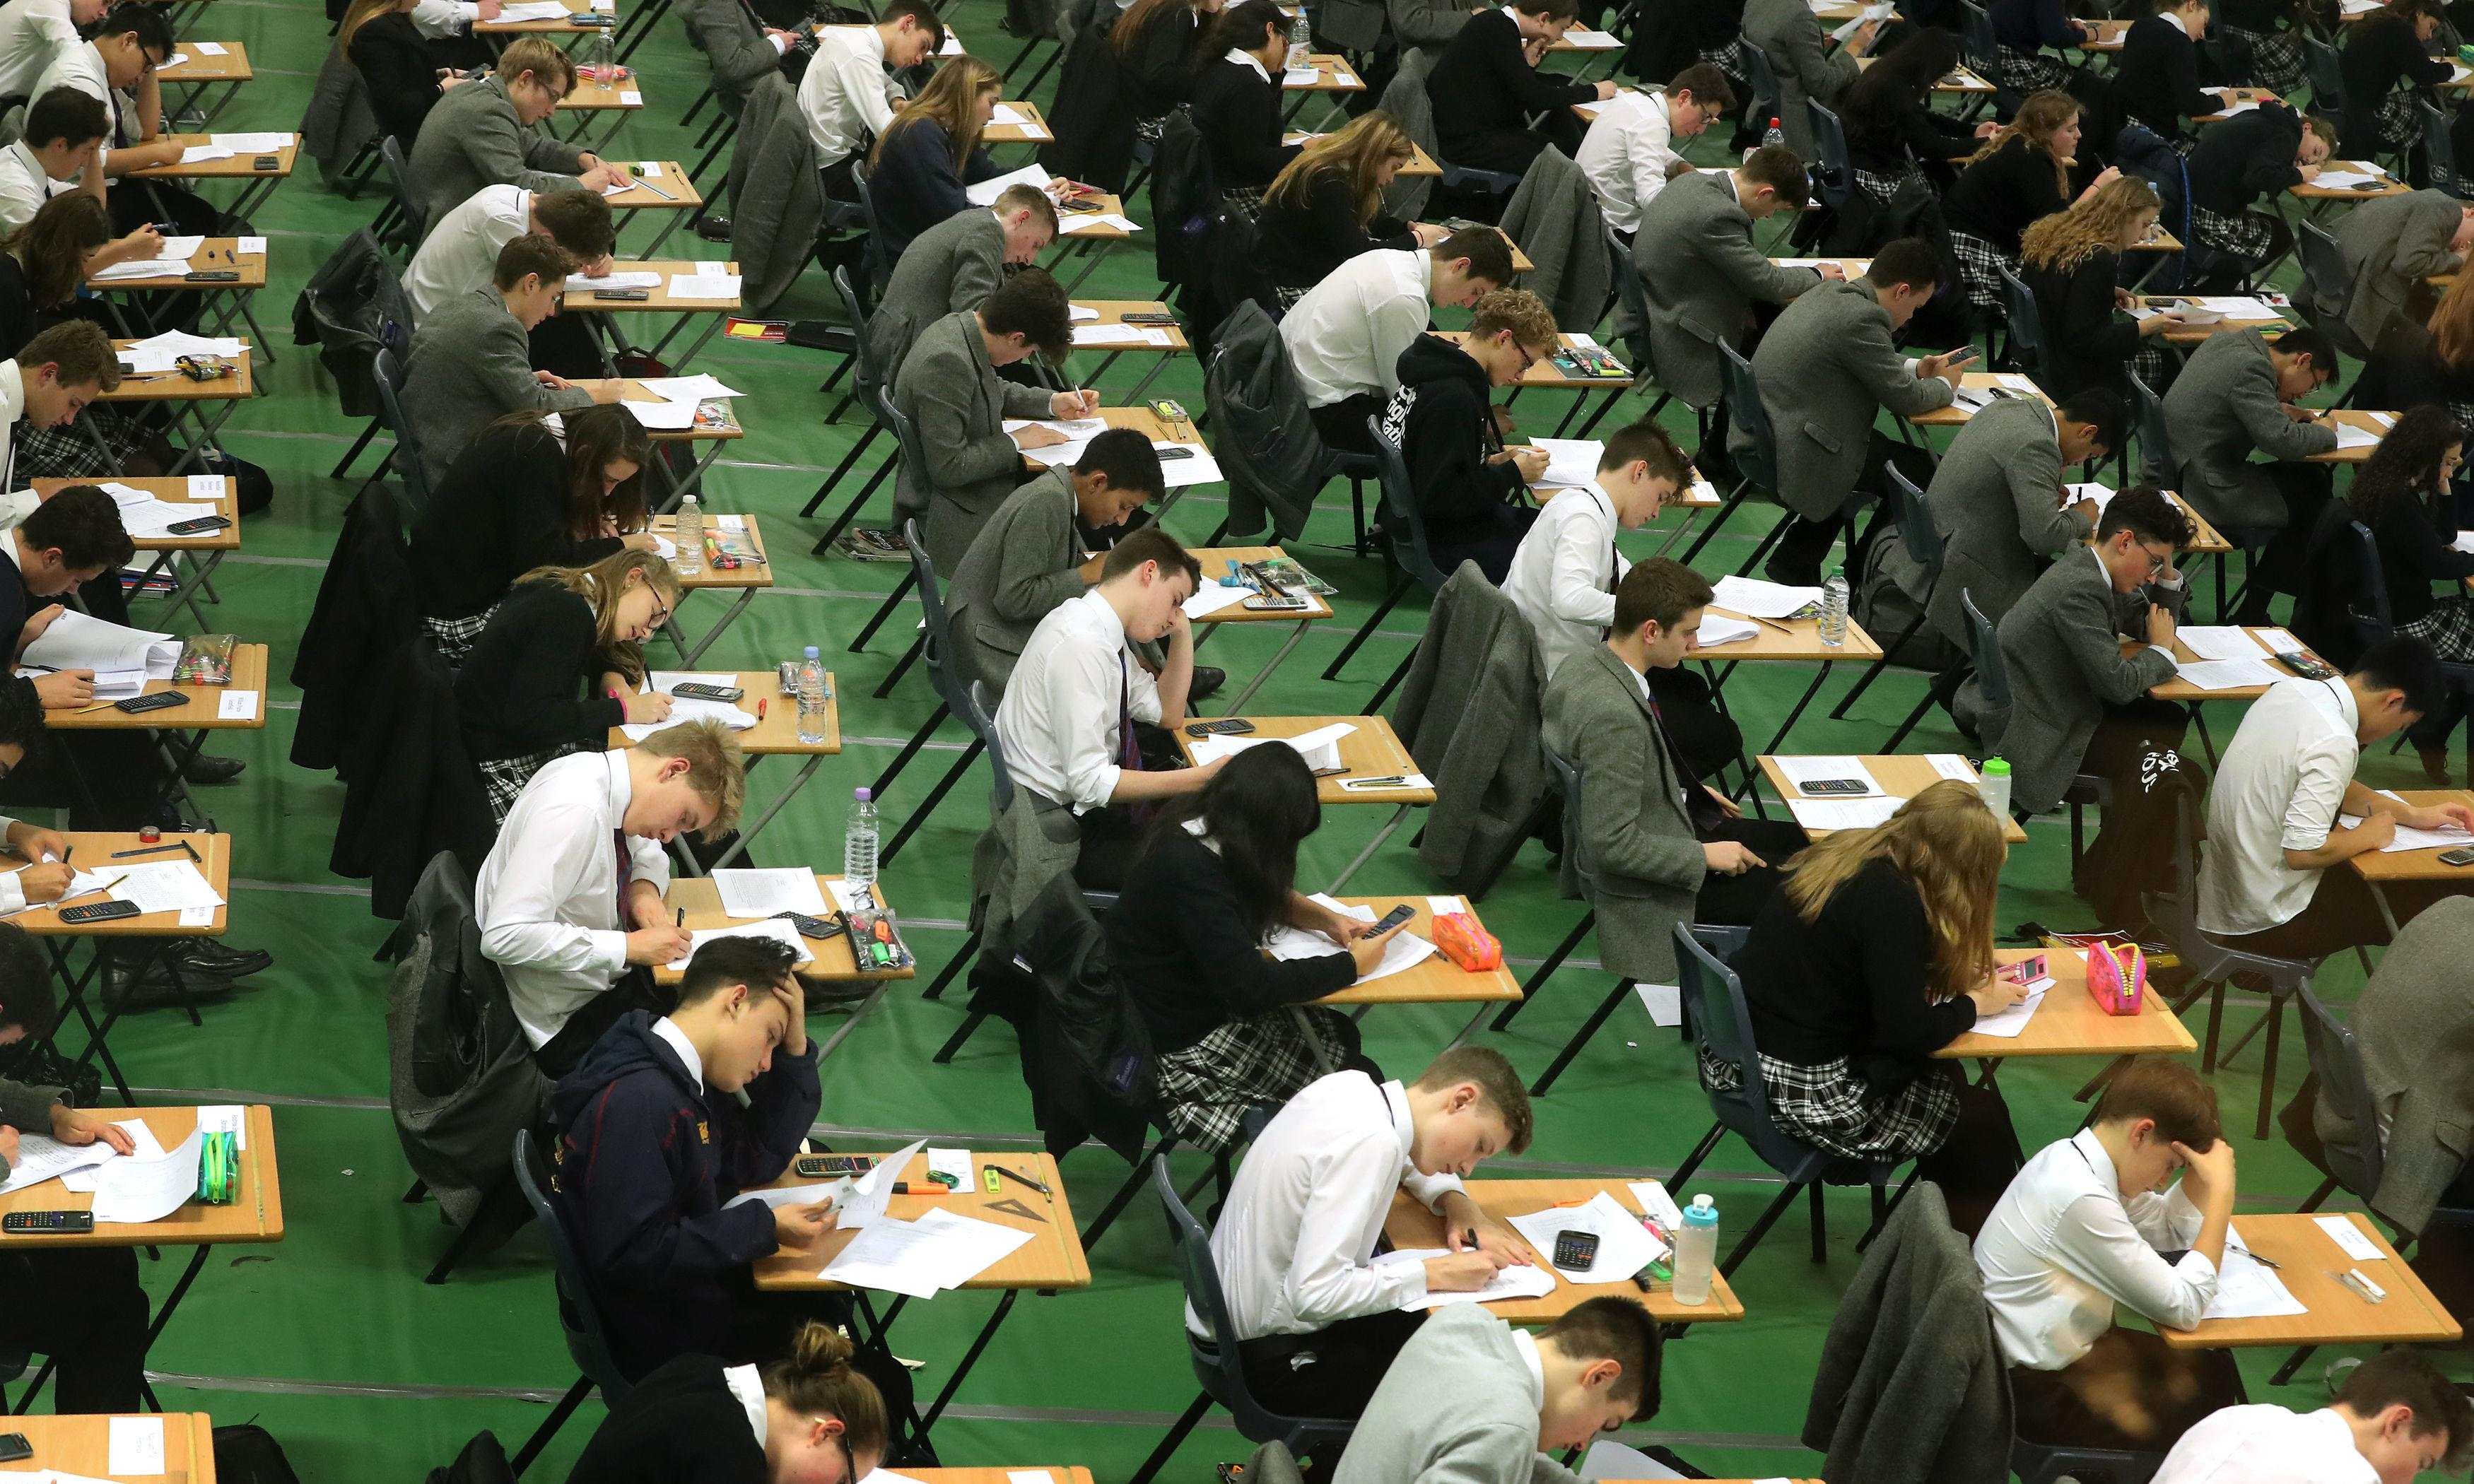 Two arrested in A-level exam leak investigation